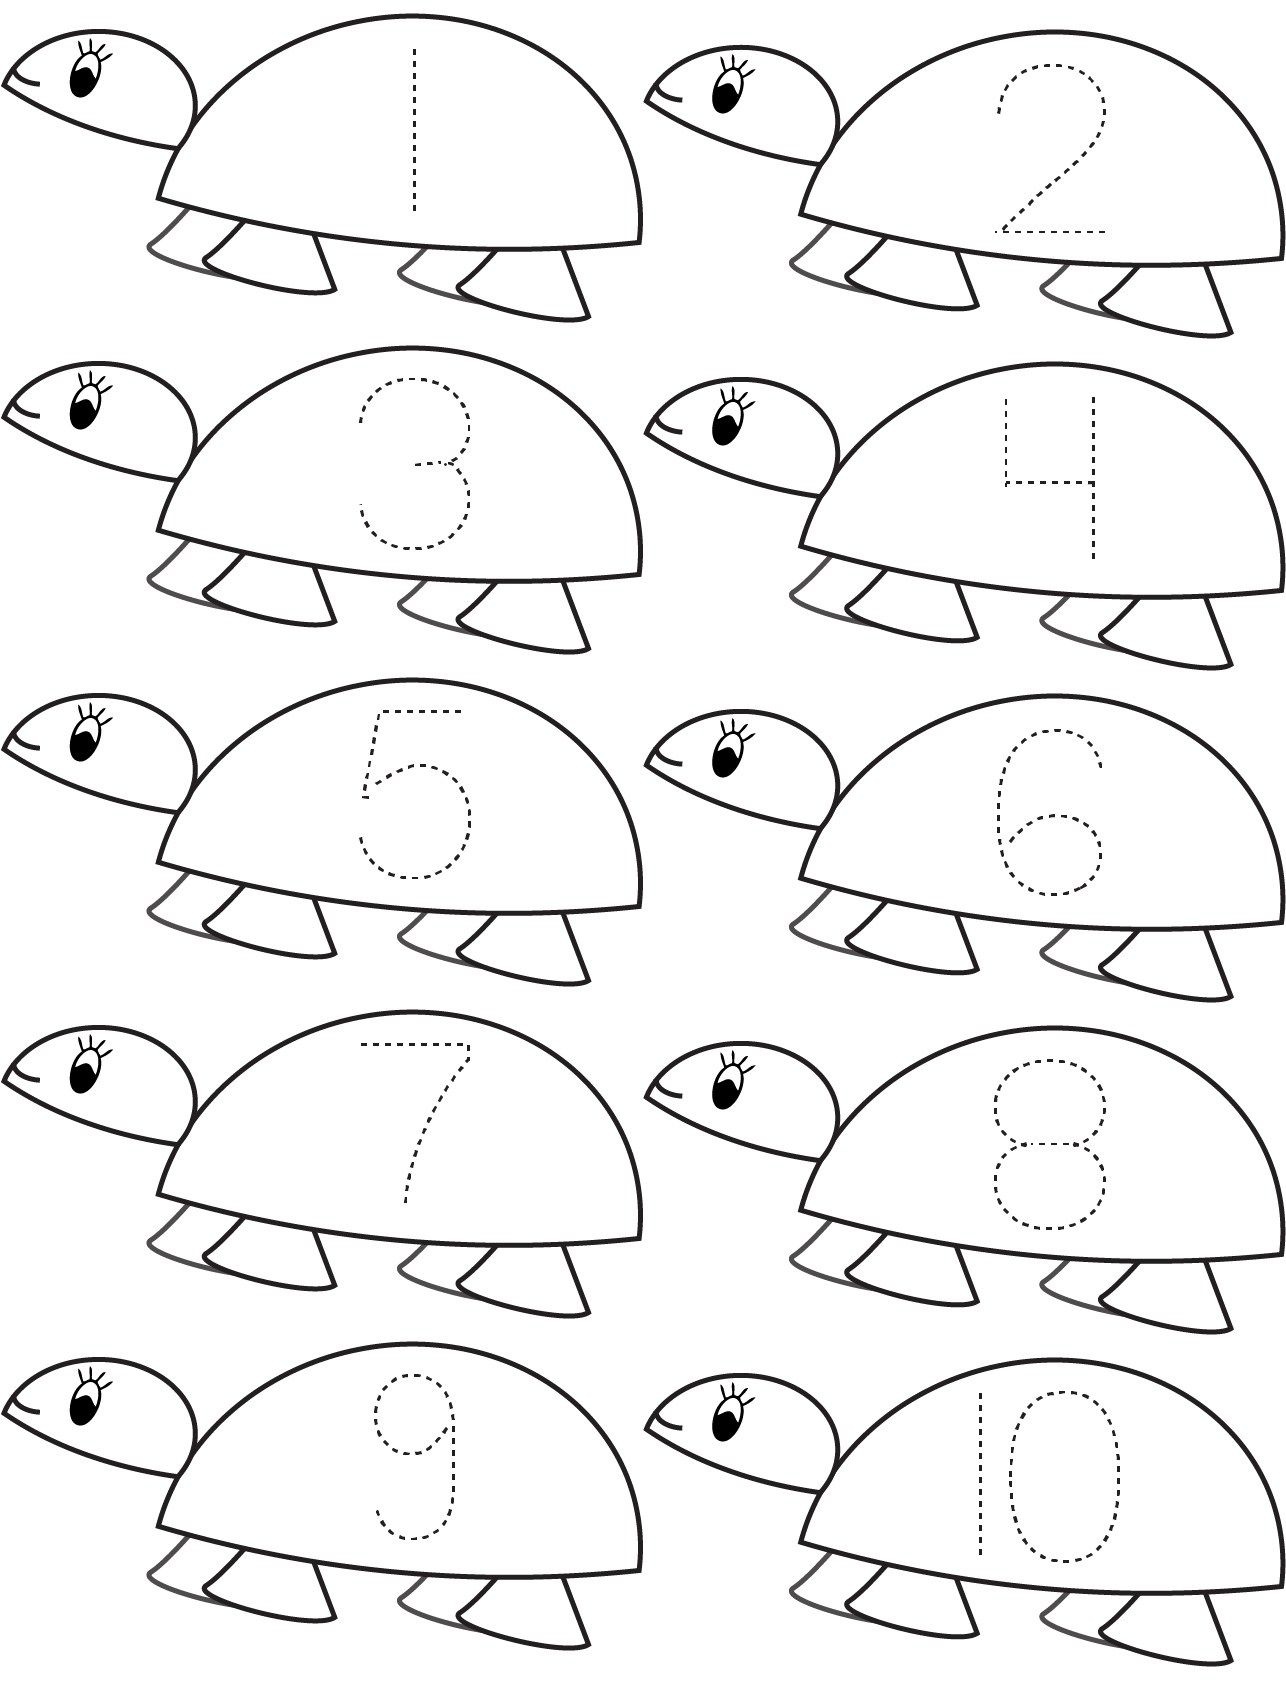 25 Marvelous Image Of Multiplication Coloring Pages